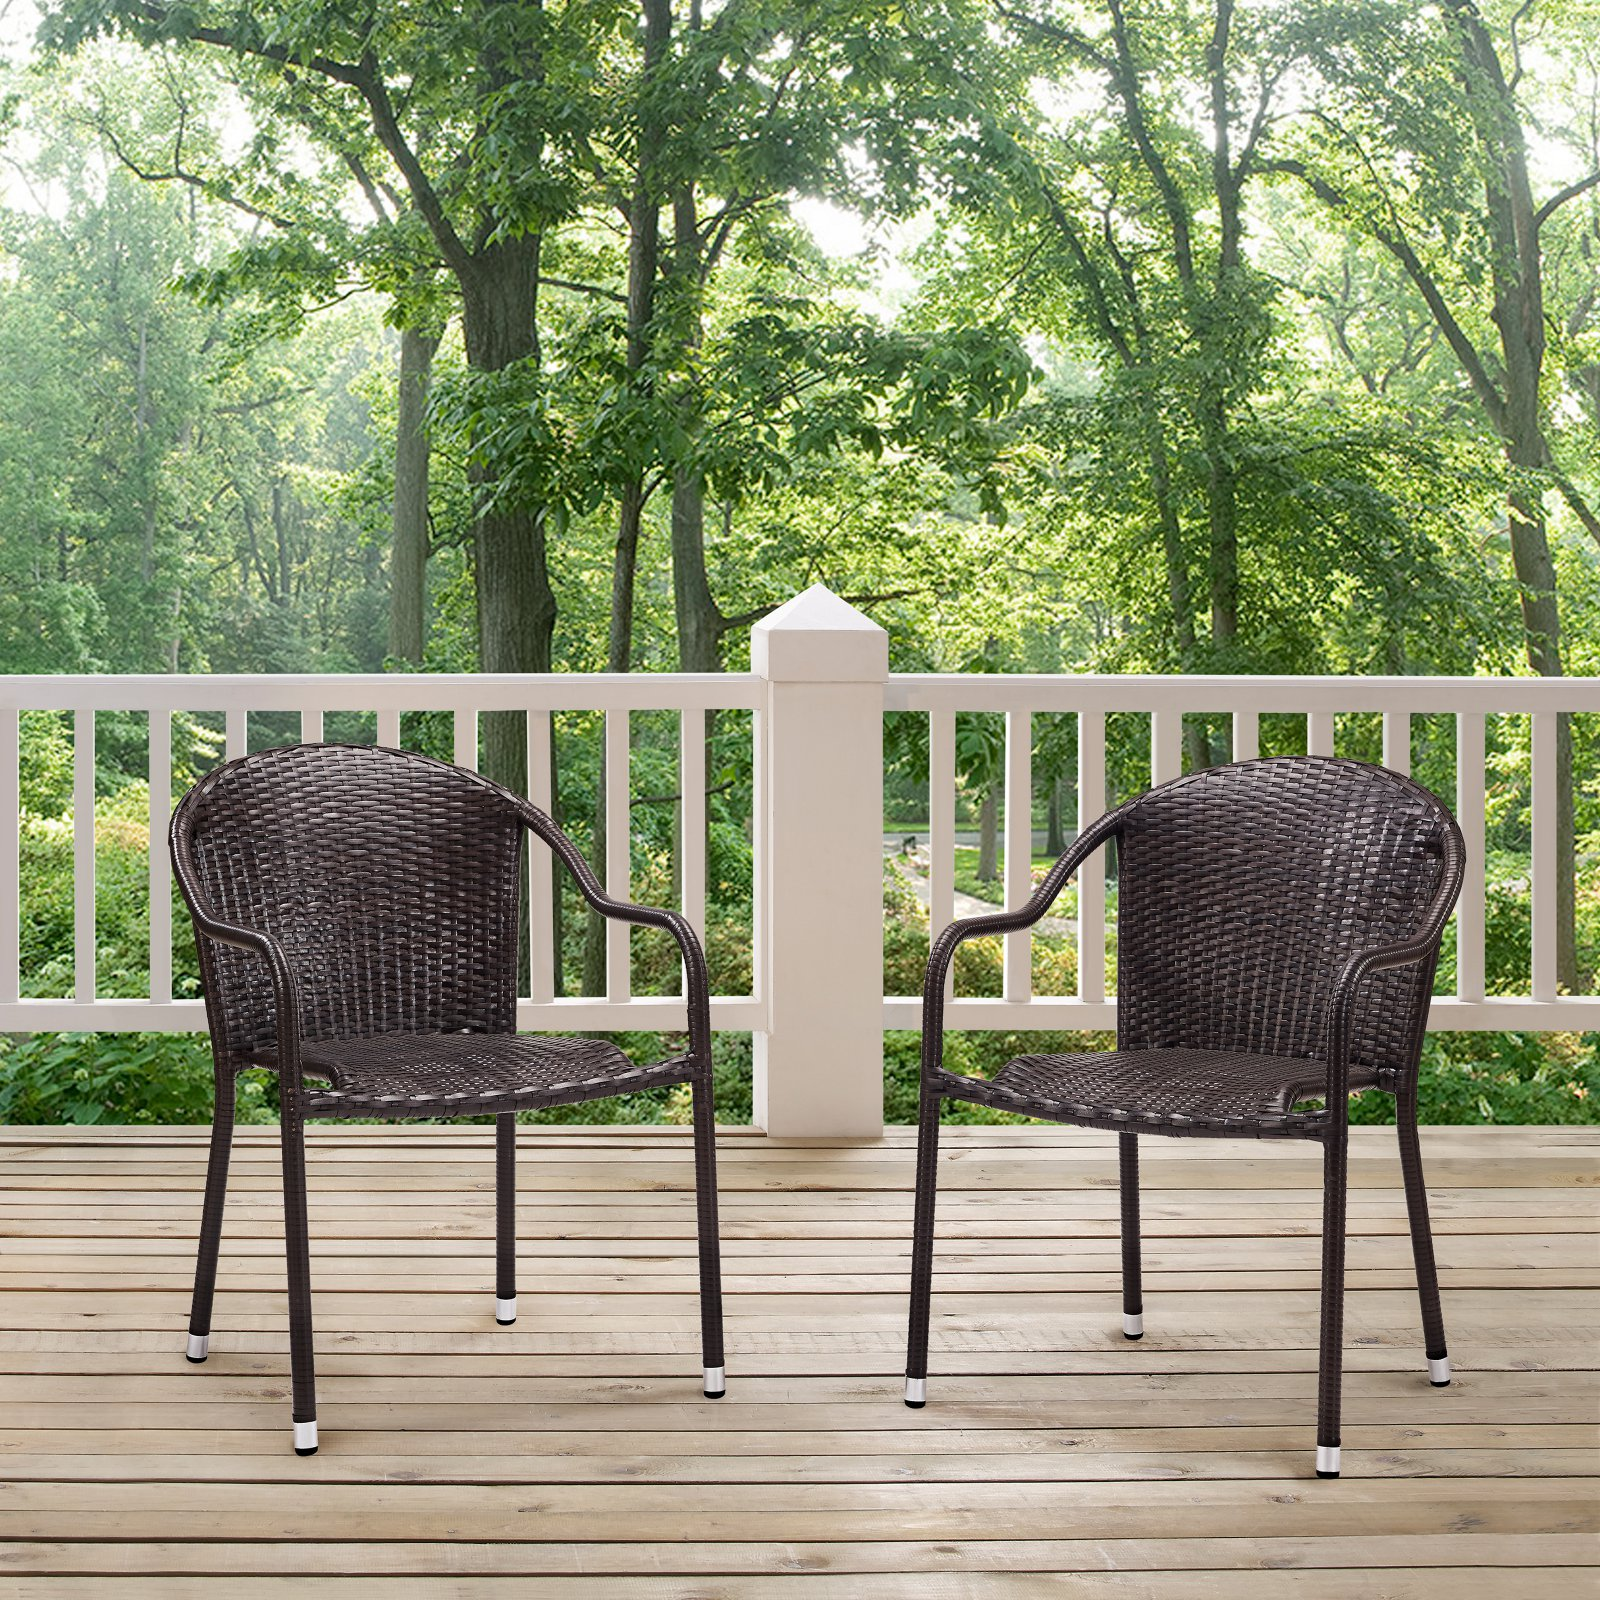 Crosley Palm Harbor Outdoor Wicker Stackable Chairs, Set of 2 by Crosley Brands, Inc